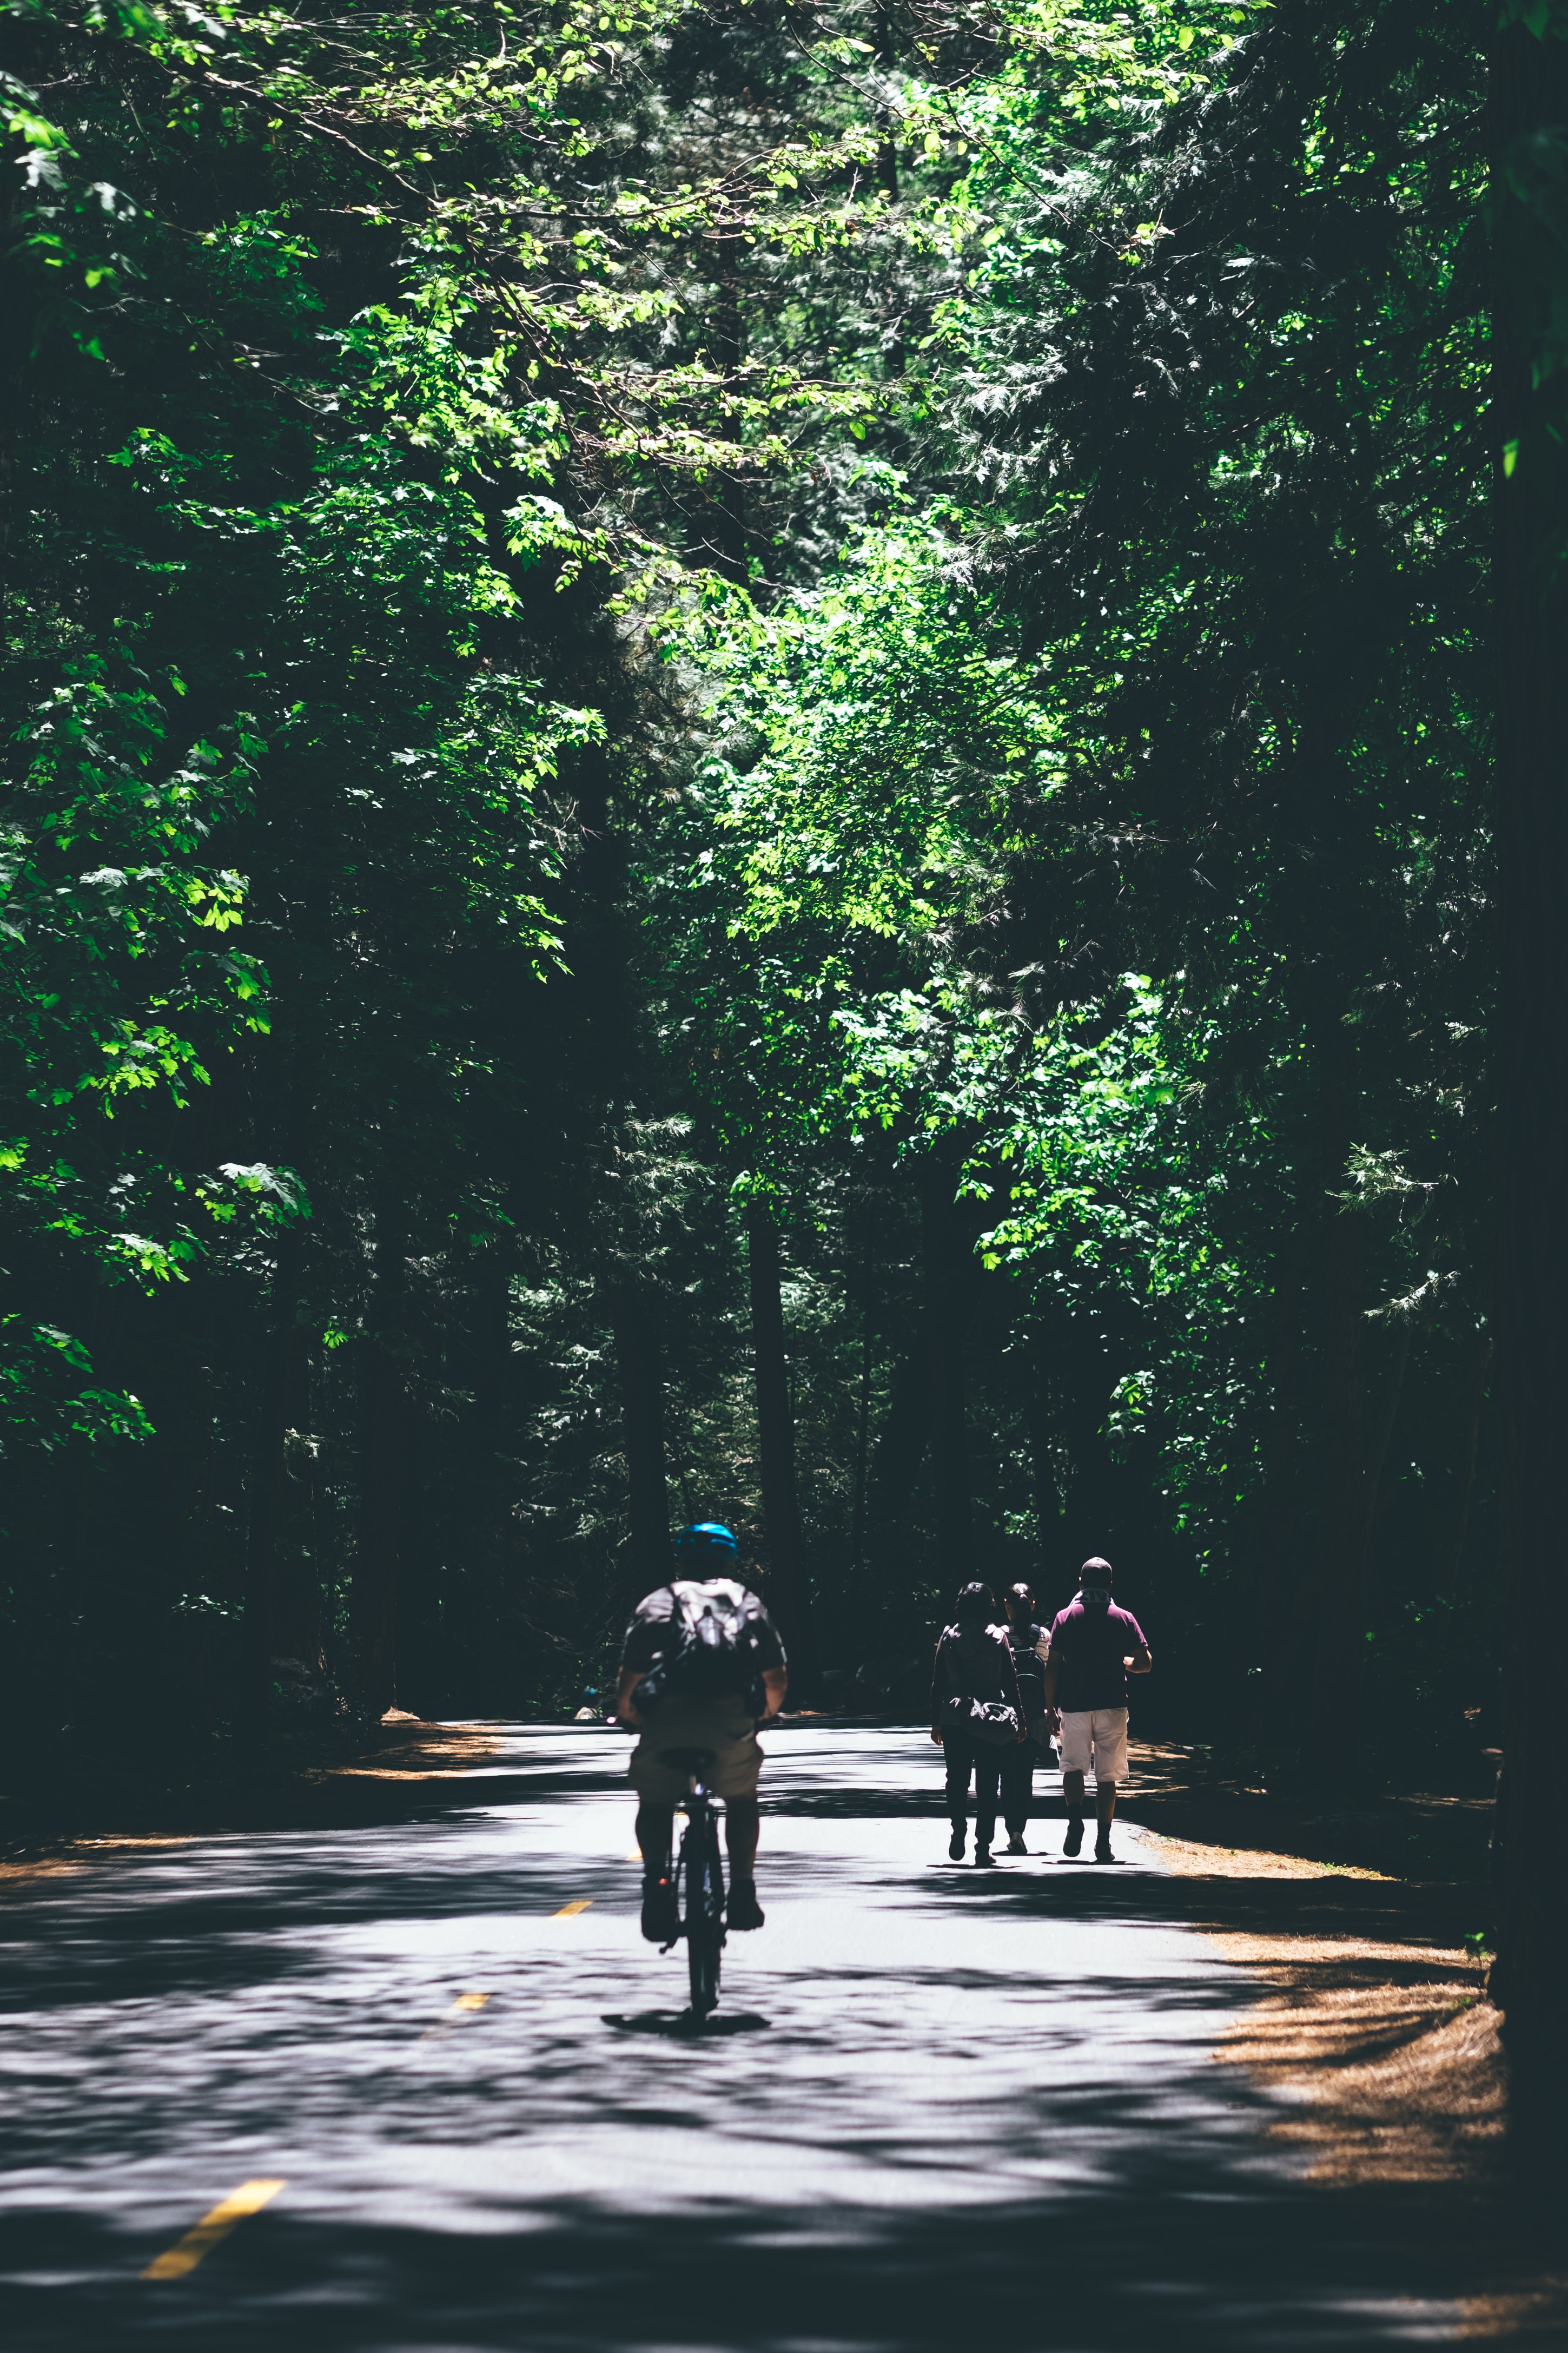 A cyclist and a group of three people walking down a street cutting through a dark forest lit by sunlight